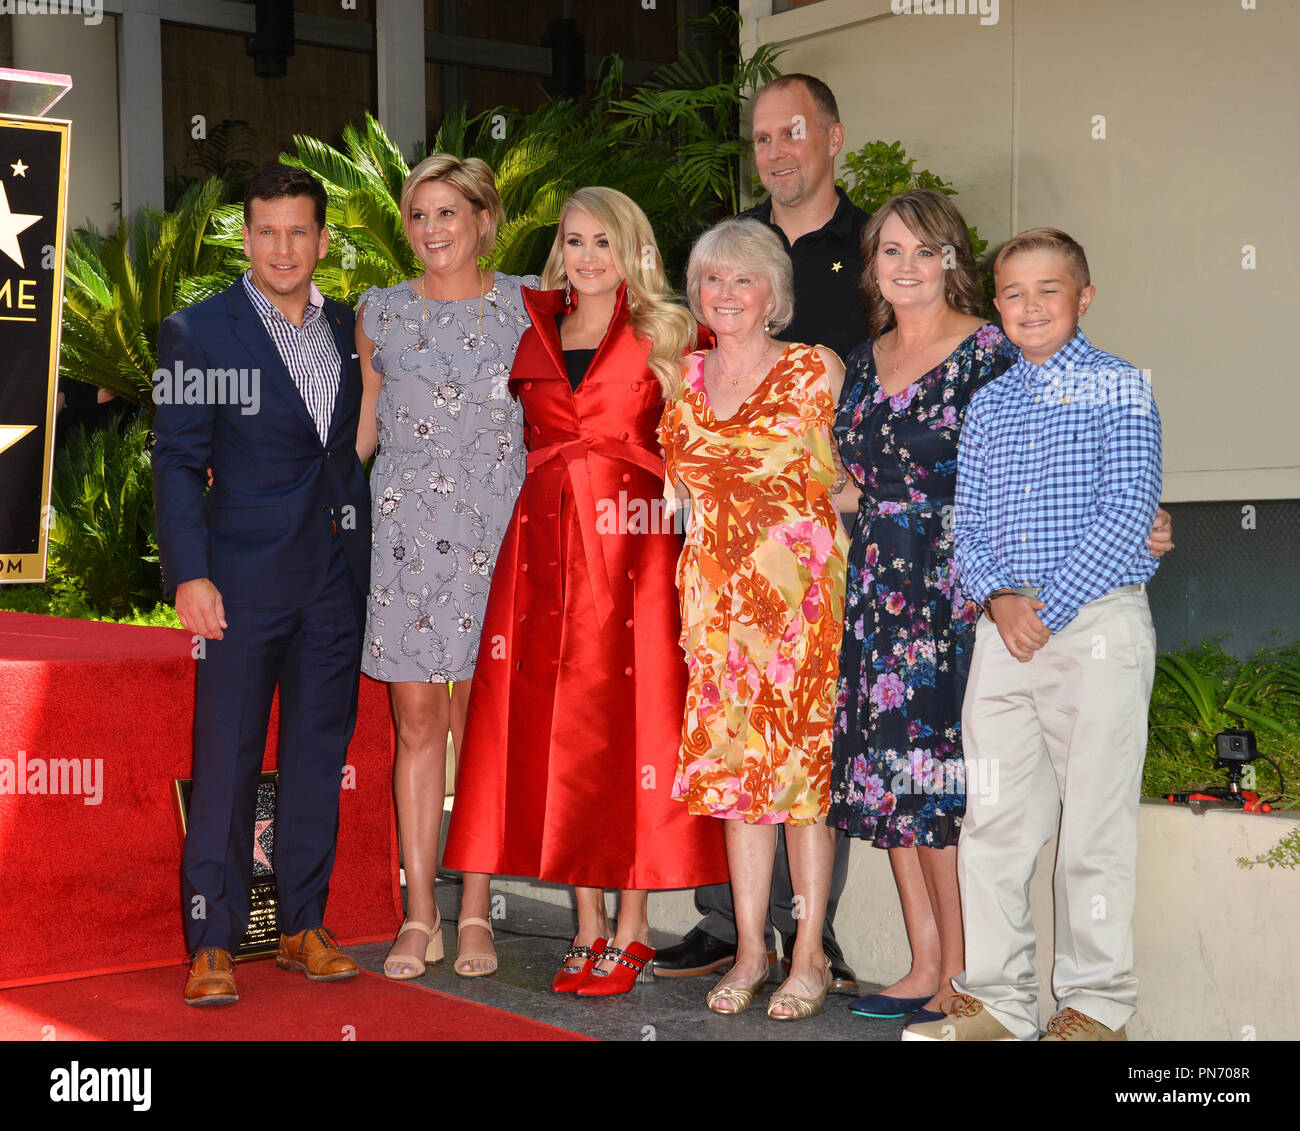 Los Angeles Usa September 20 2018 Carrie Underwood Family At